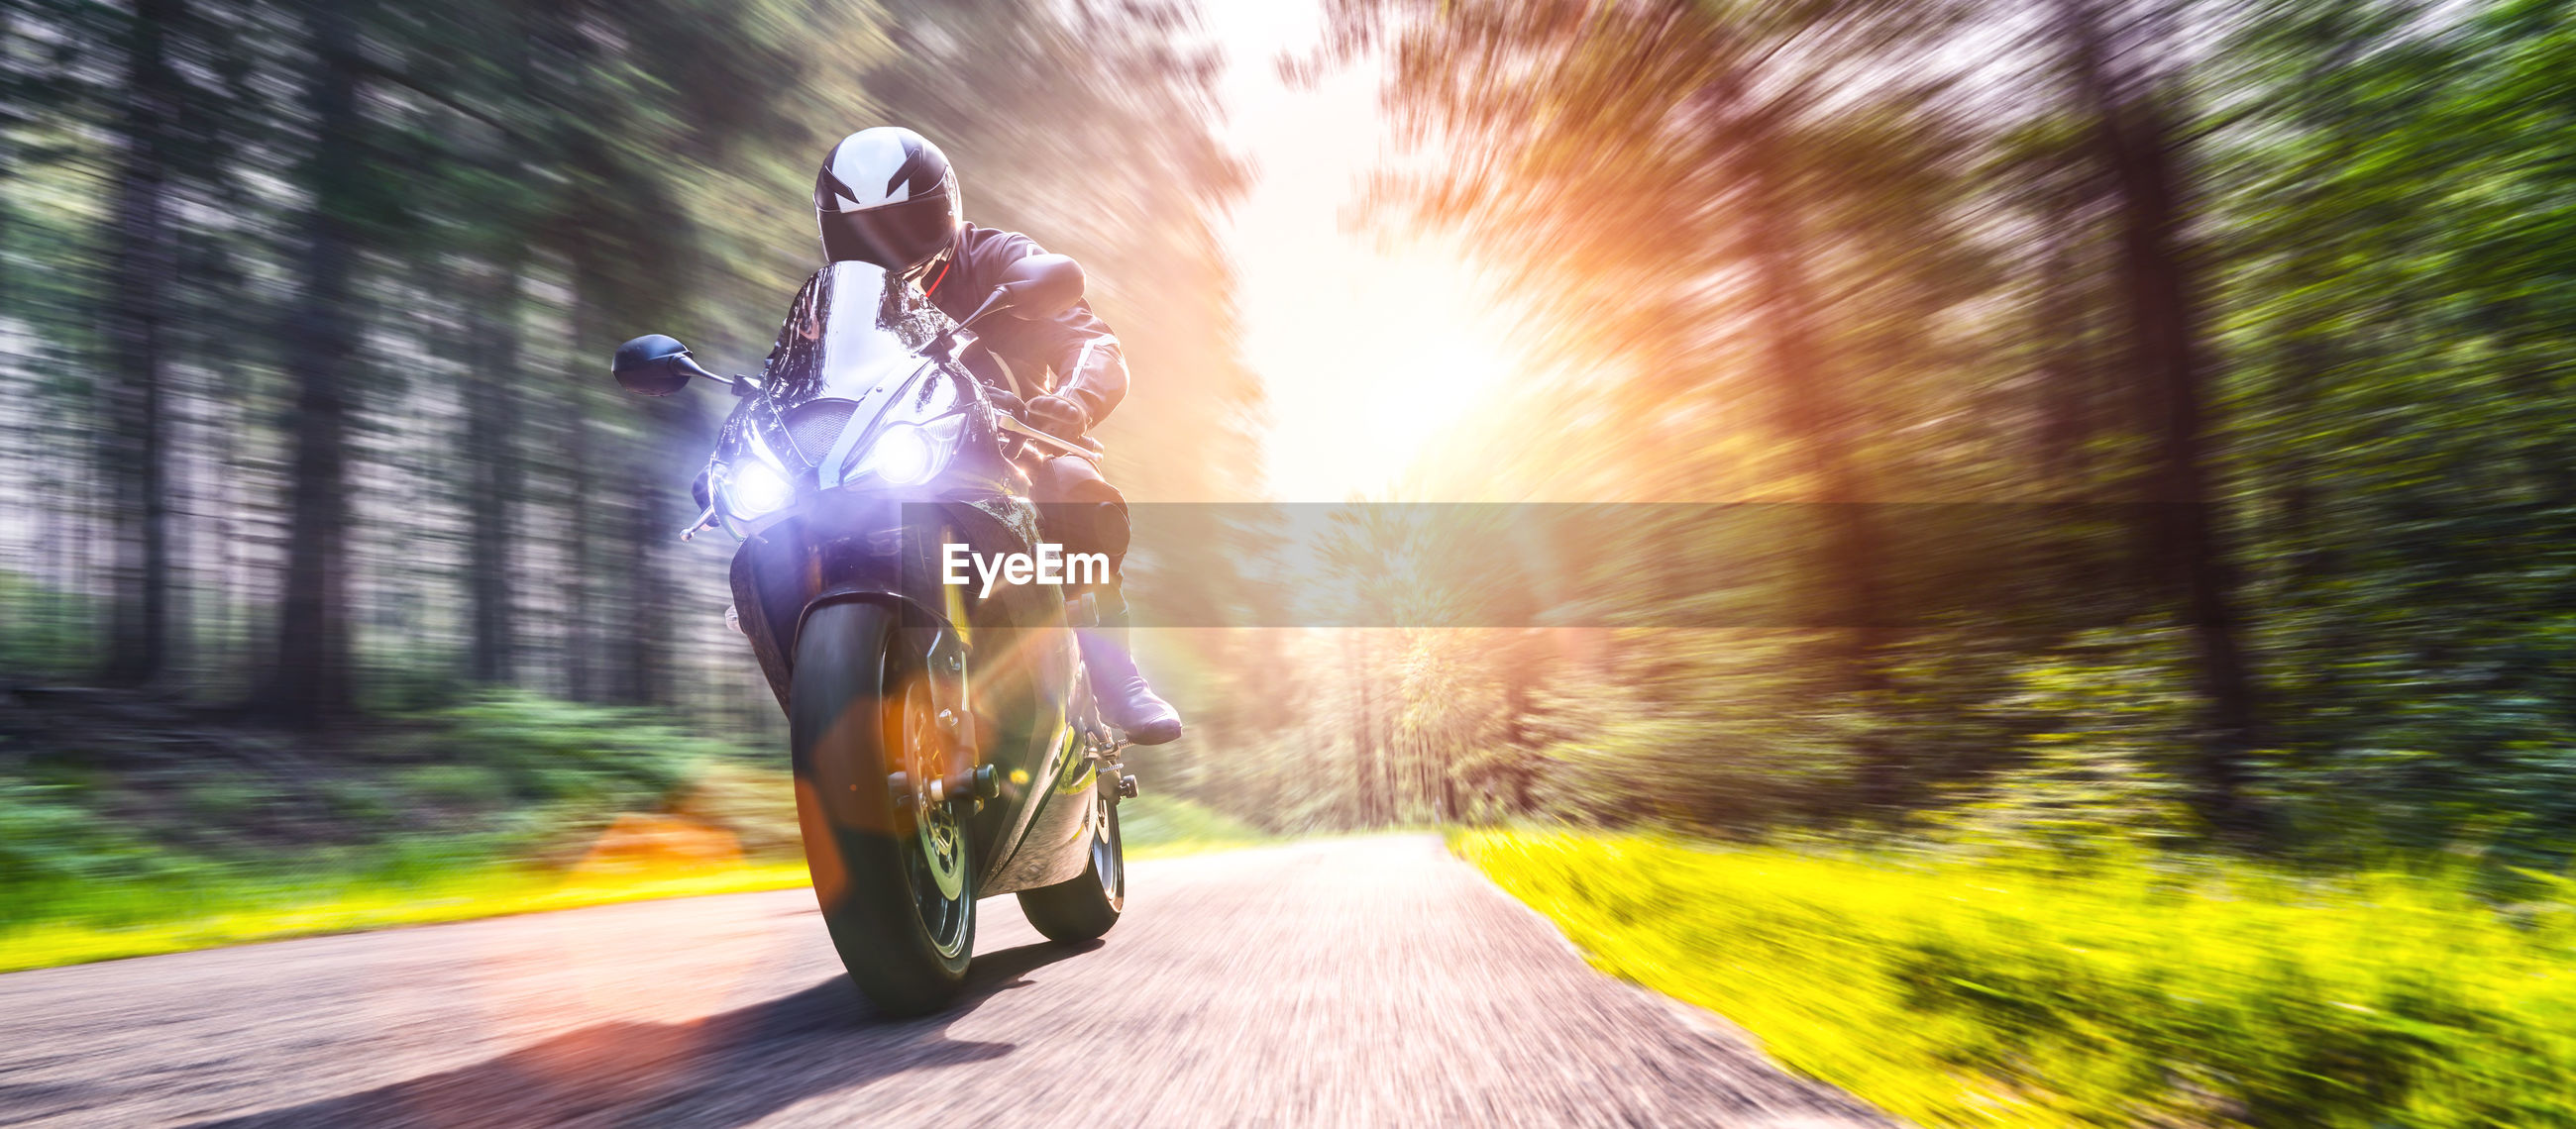 Man riding motorcycle on road in forest